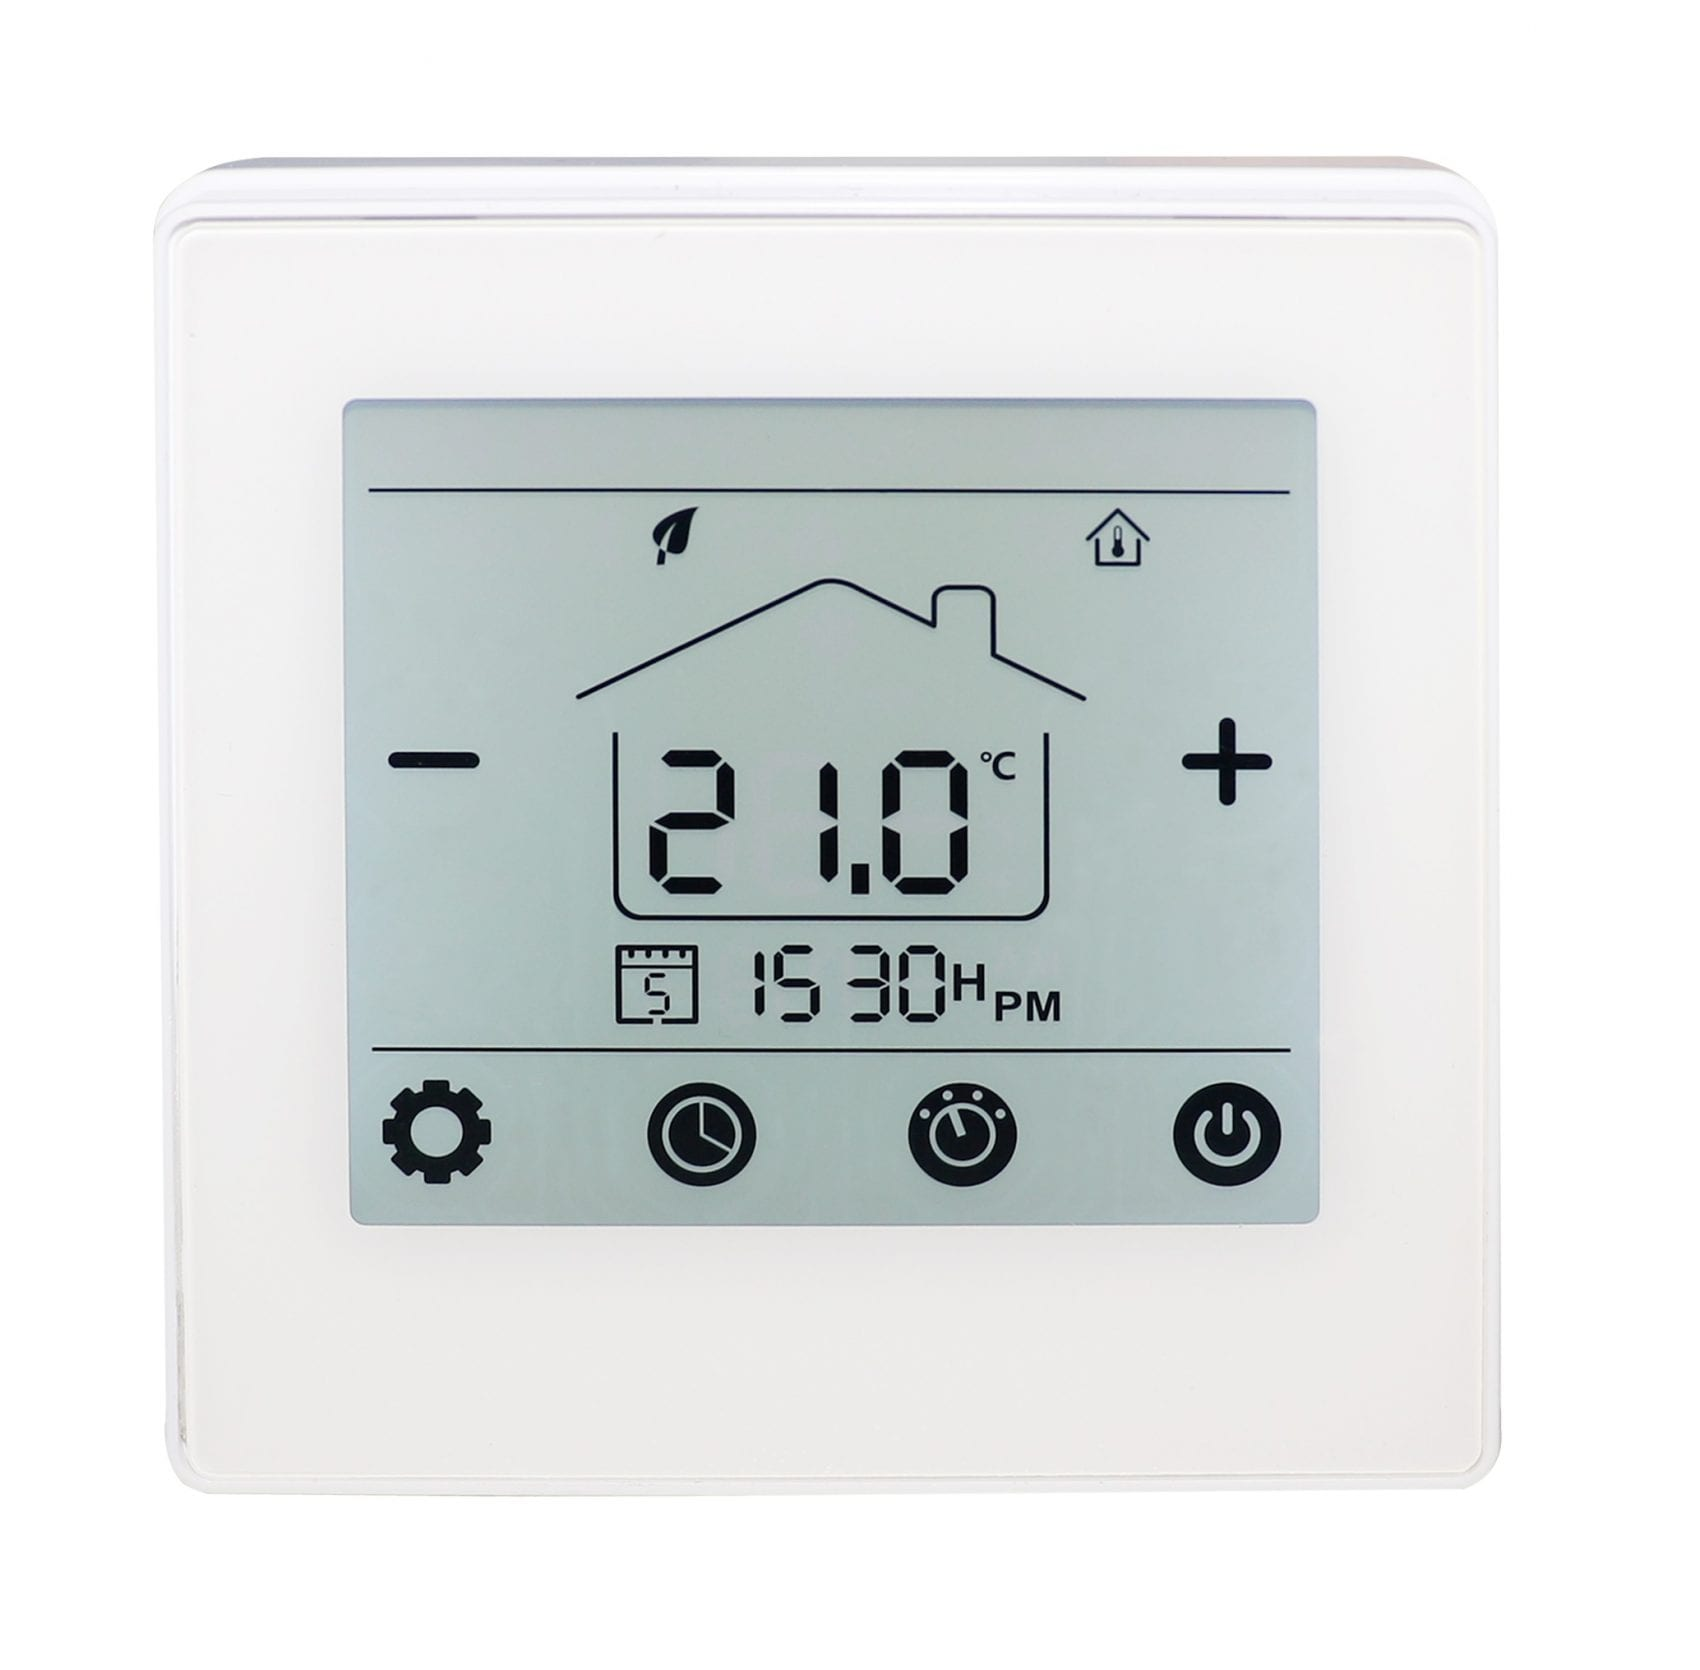 Herschel iQ MD1 Wired Thermostat